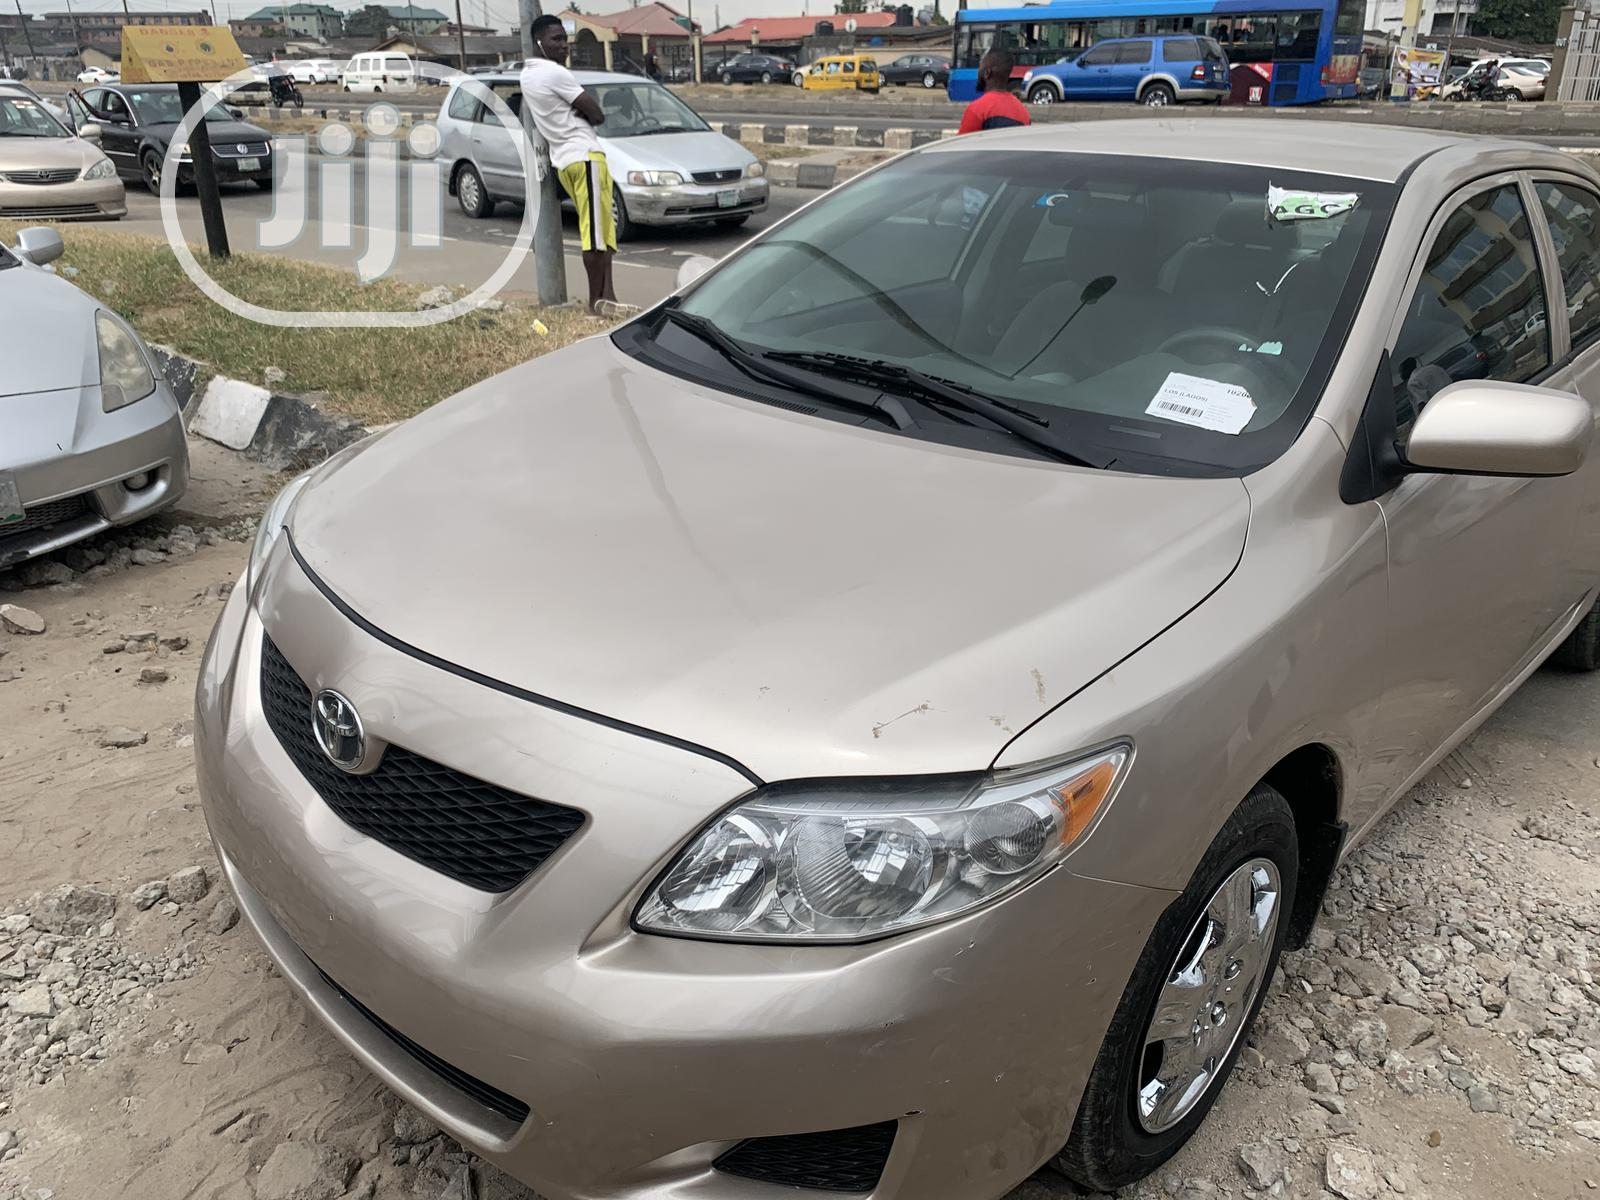 Toyota Corolla 2009 Gold In Surulere Cars Yomi Autos Jiji Ng For Sale In Surulere Buy Cars From Yomi Autos On Jiji Ng